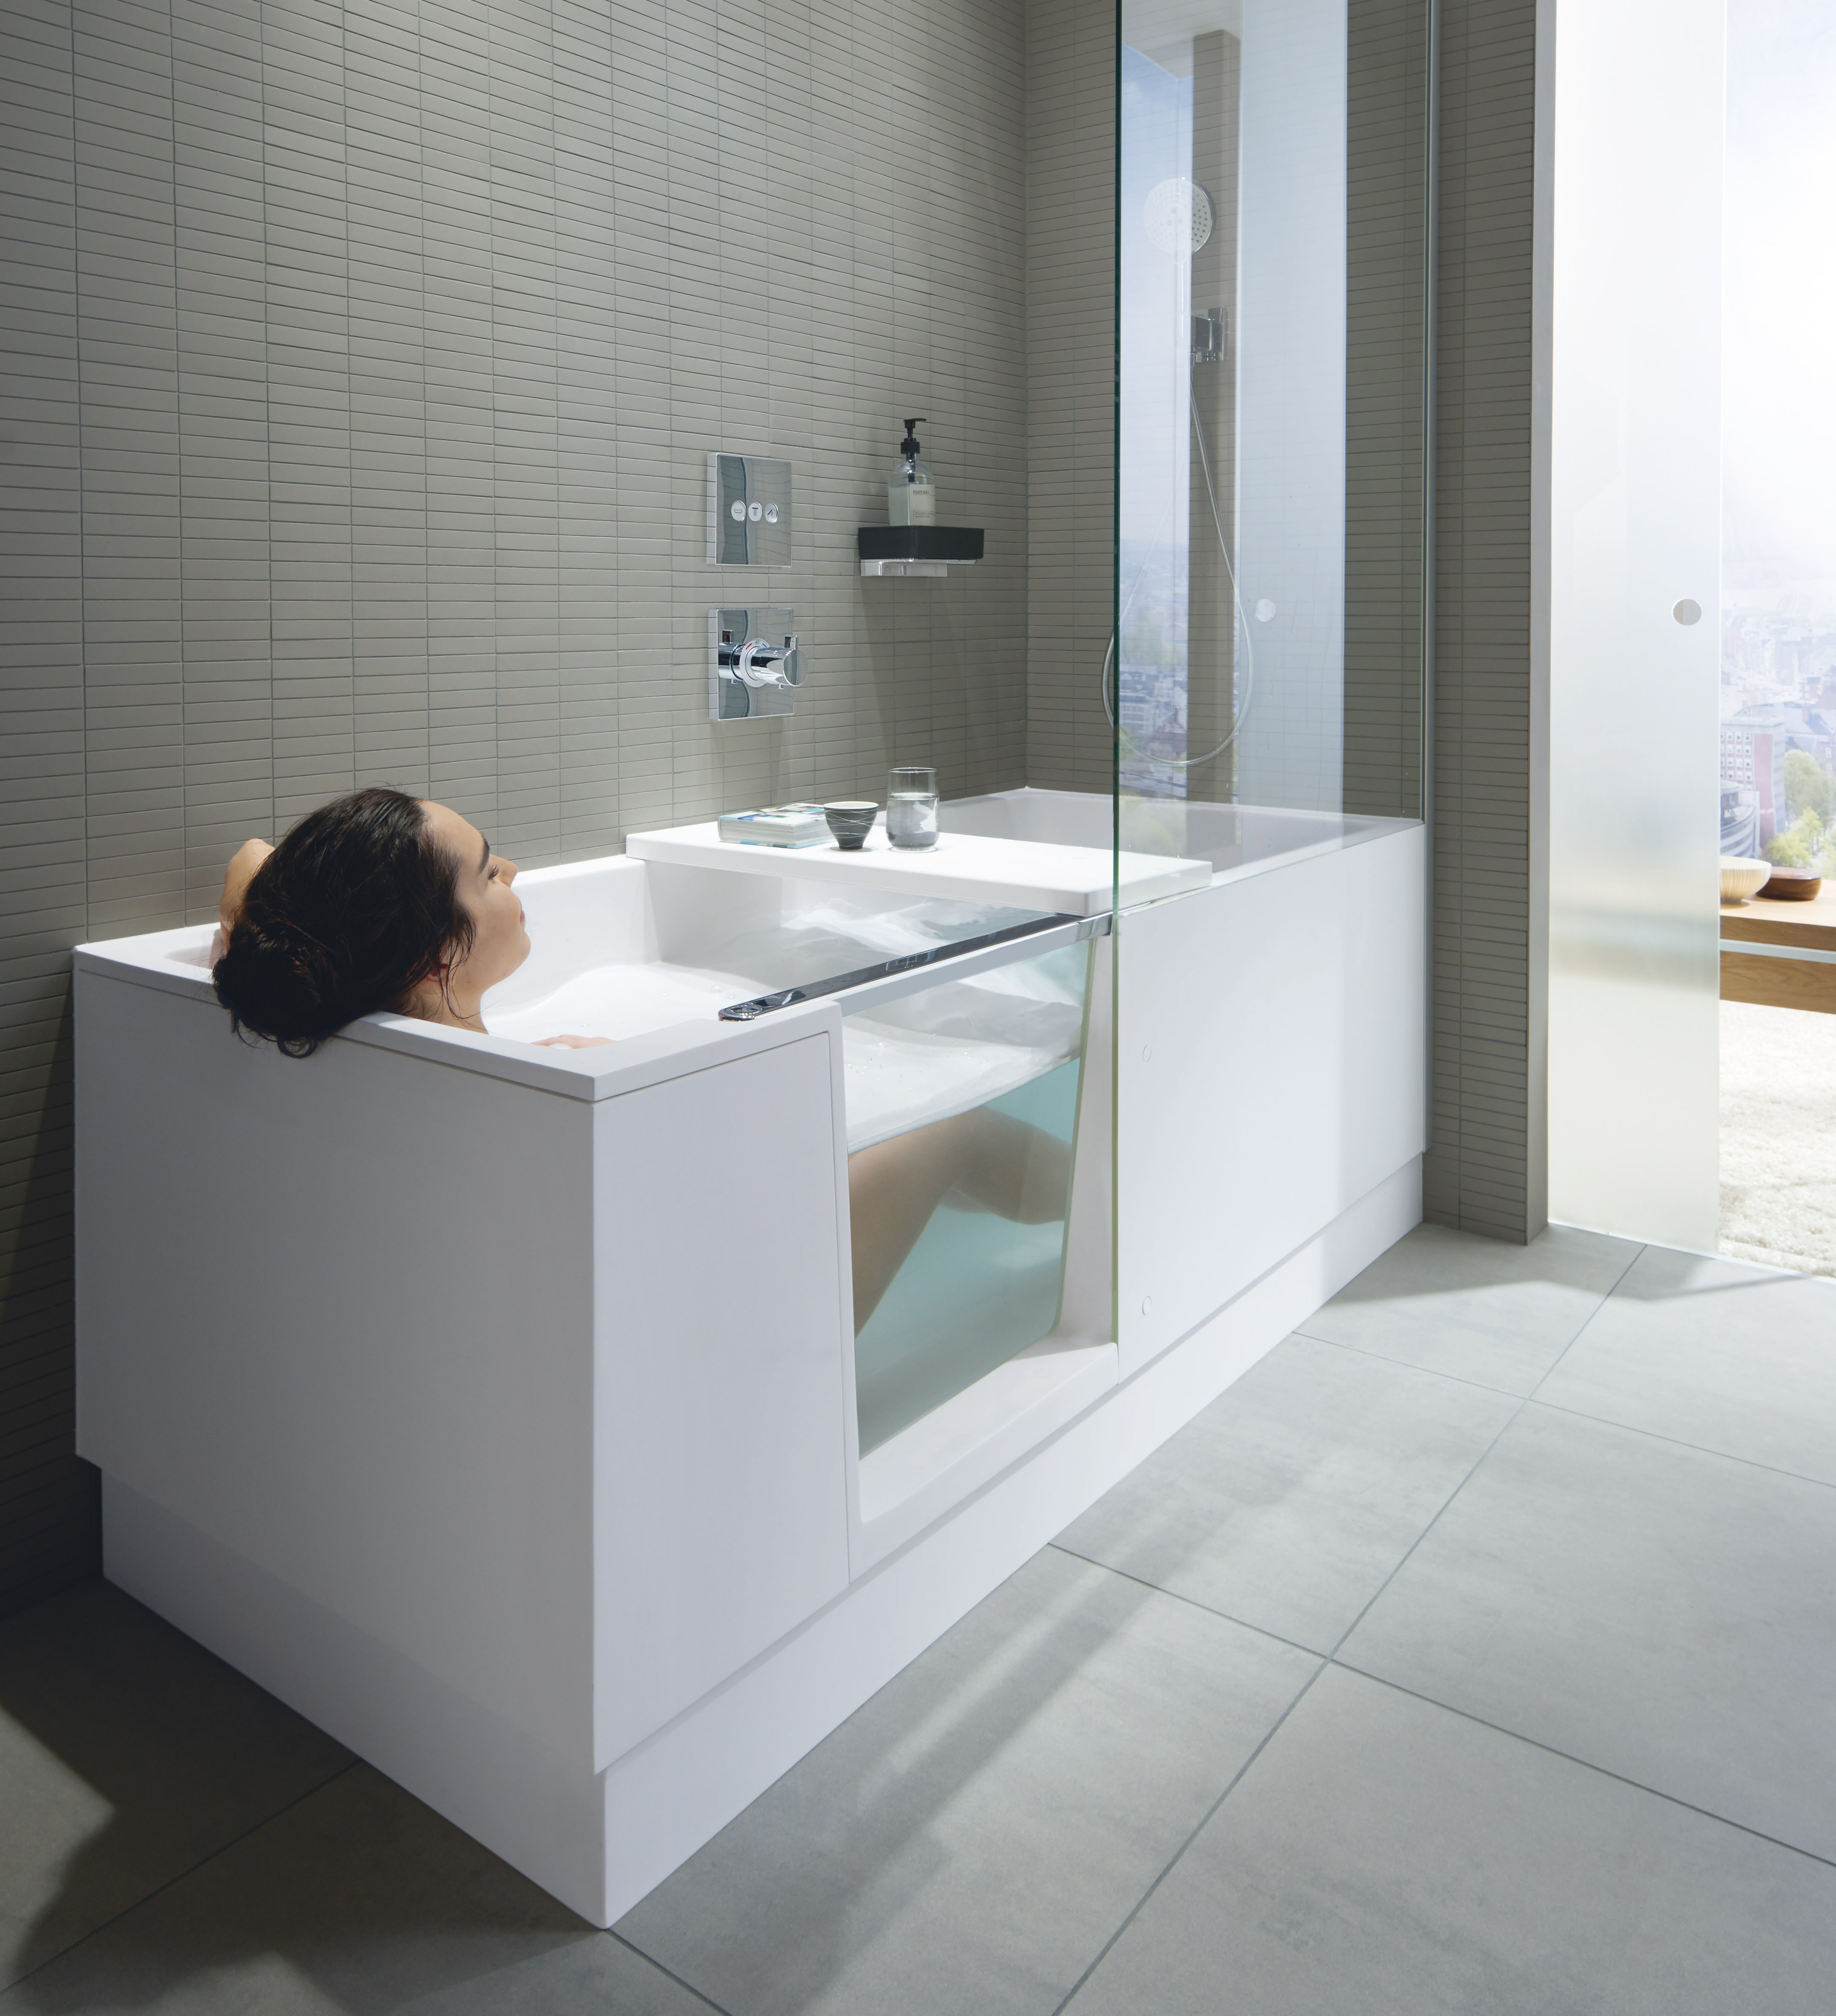 Shower + Bath Is The Perfect Solution For Any Small Bathrooms!